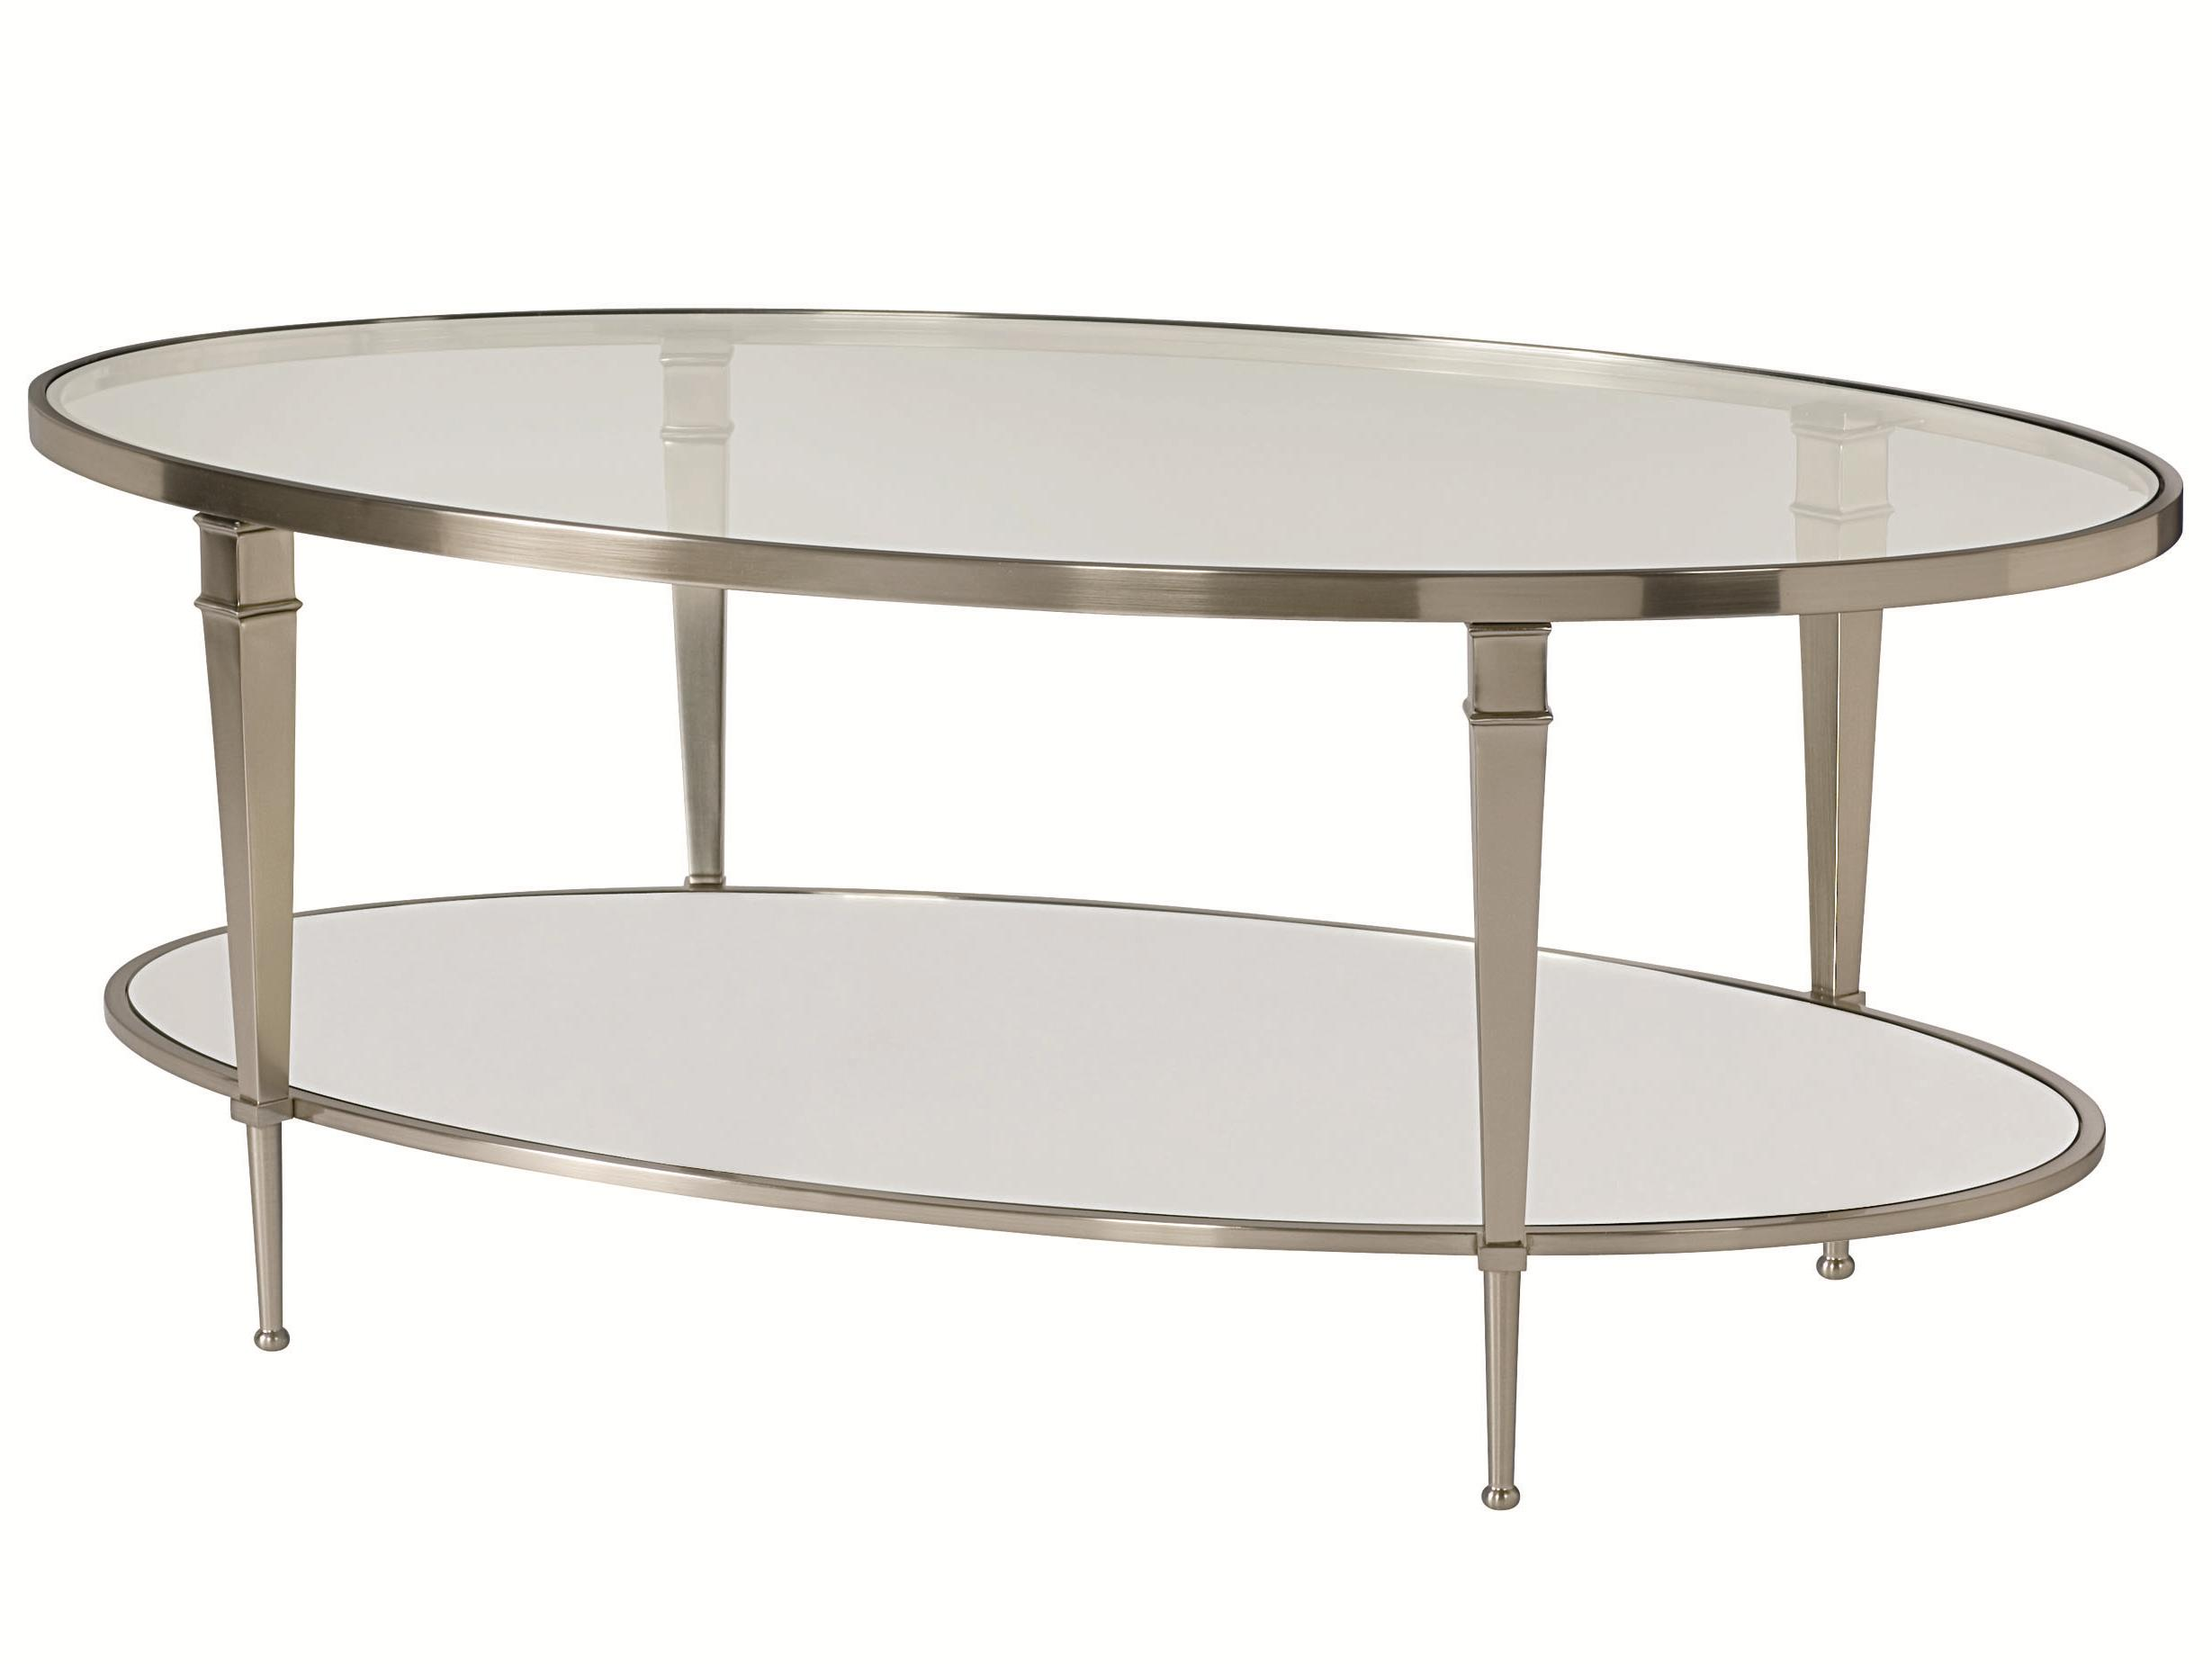 Finish Tables Oval Satin Nickel Antique Mirror Finish Cocktail Table By